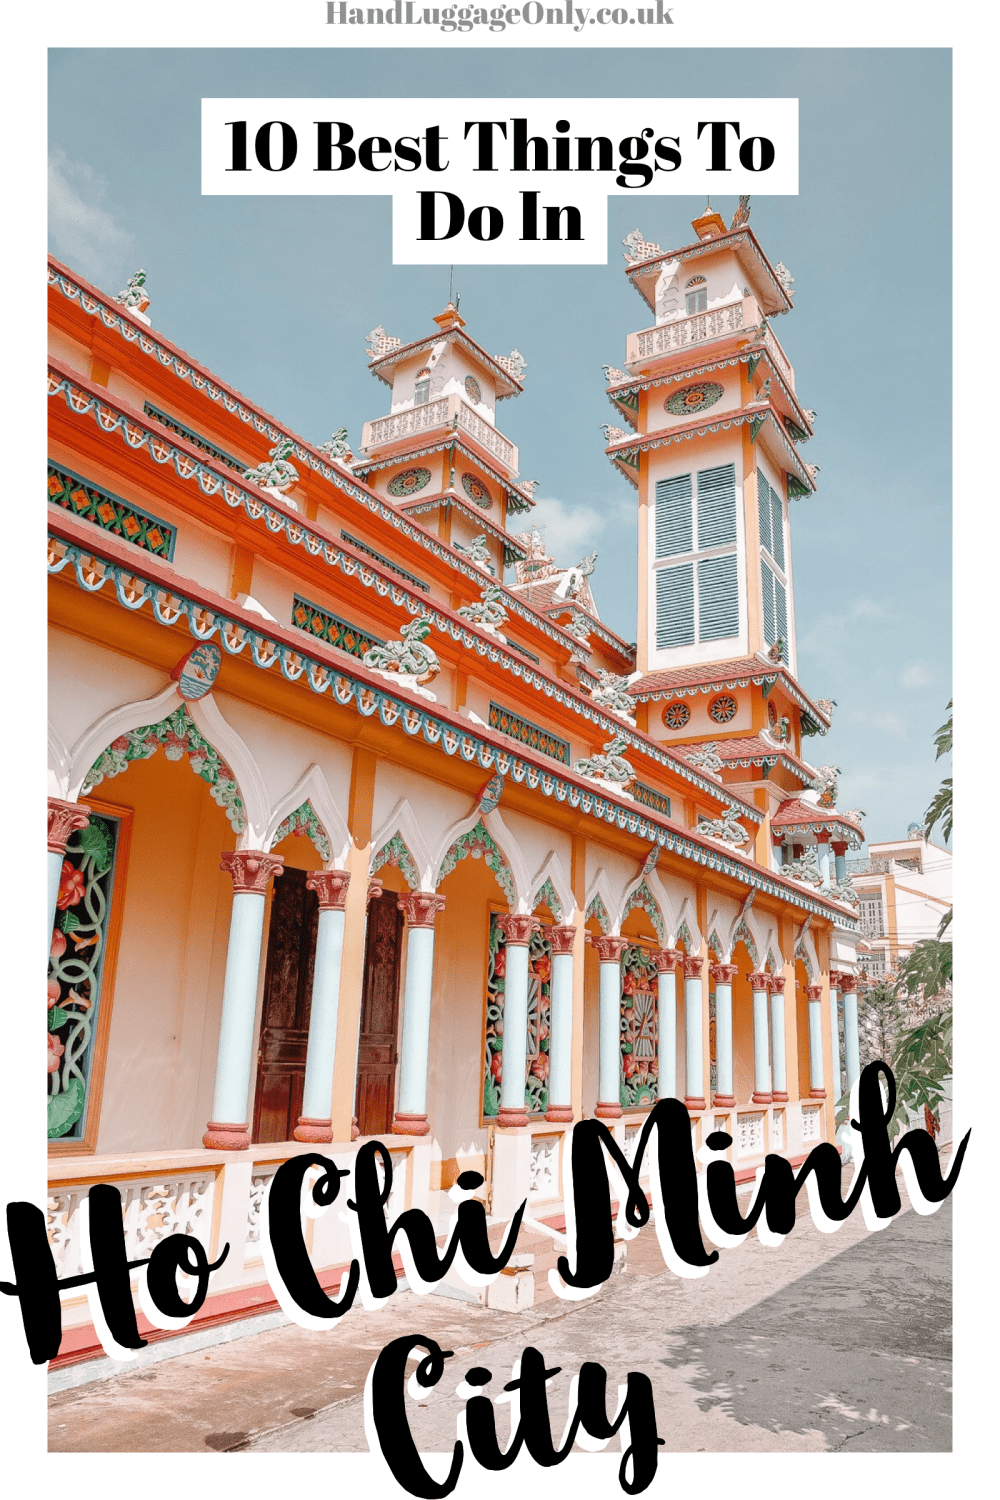 10 Best Things To Do In Ho Chi Minh City (1)